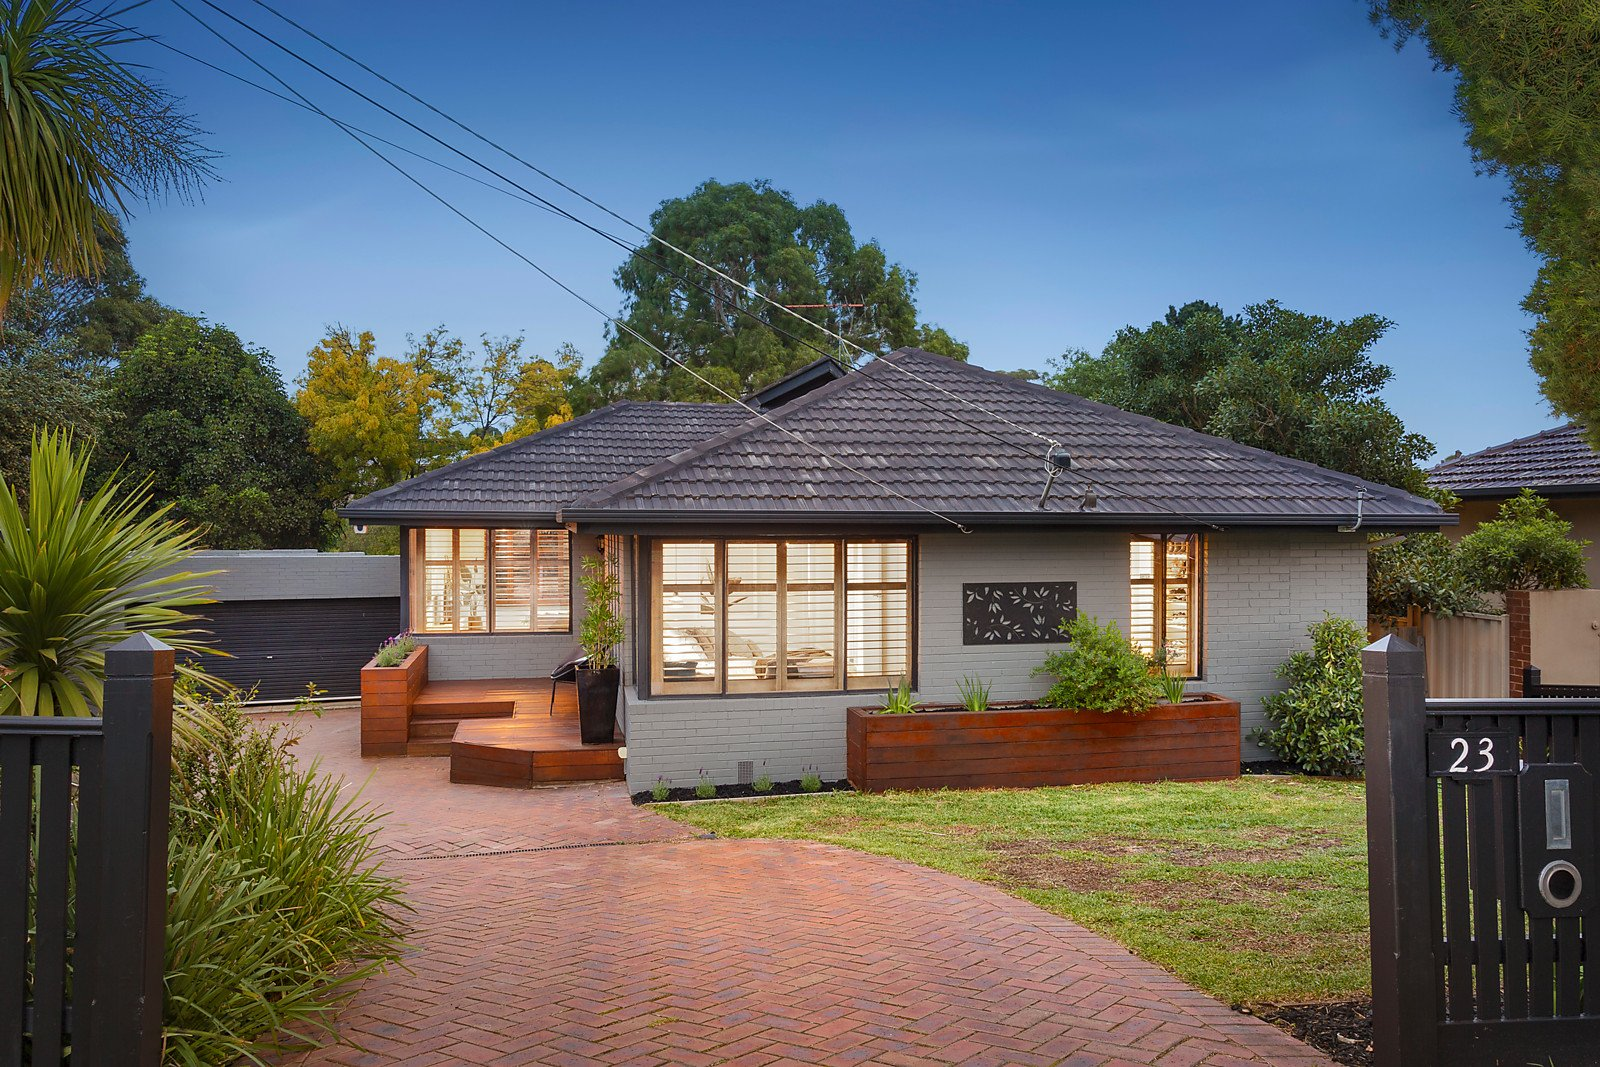 23 Hillside Grove, Airport West, VIC, 3042 image 1